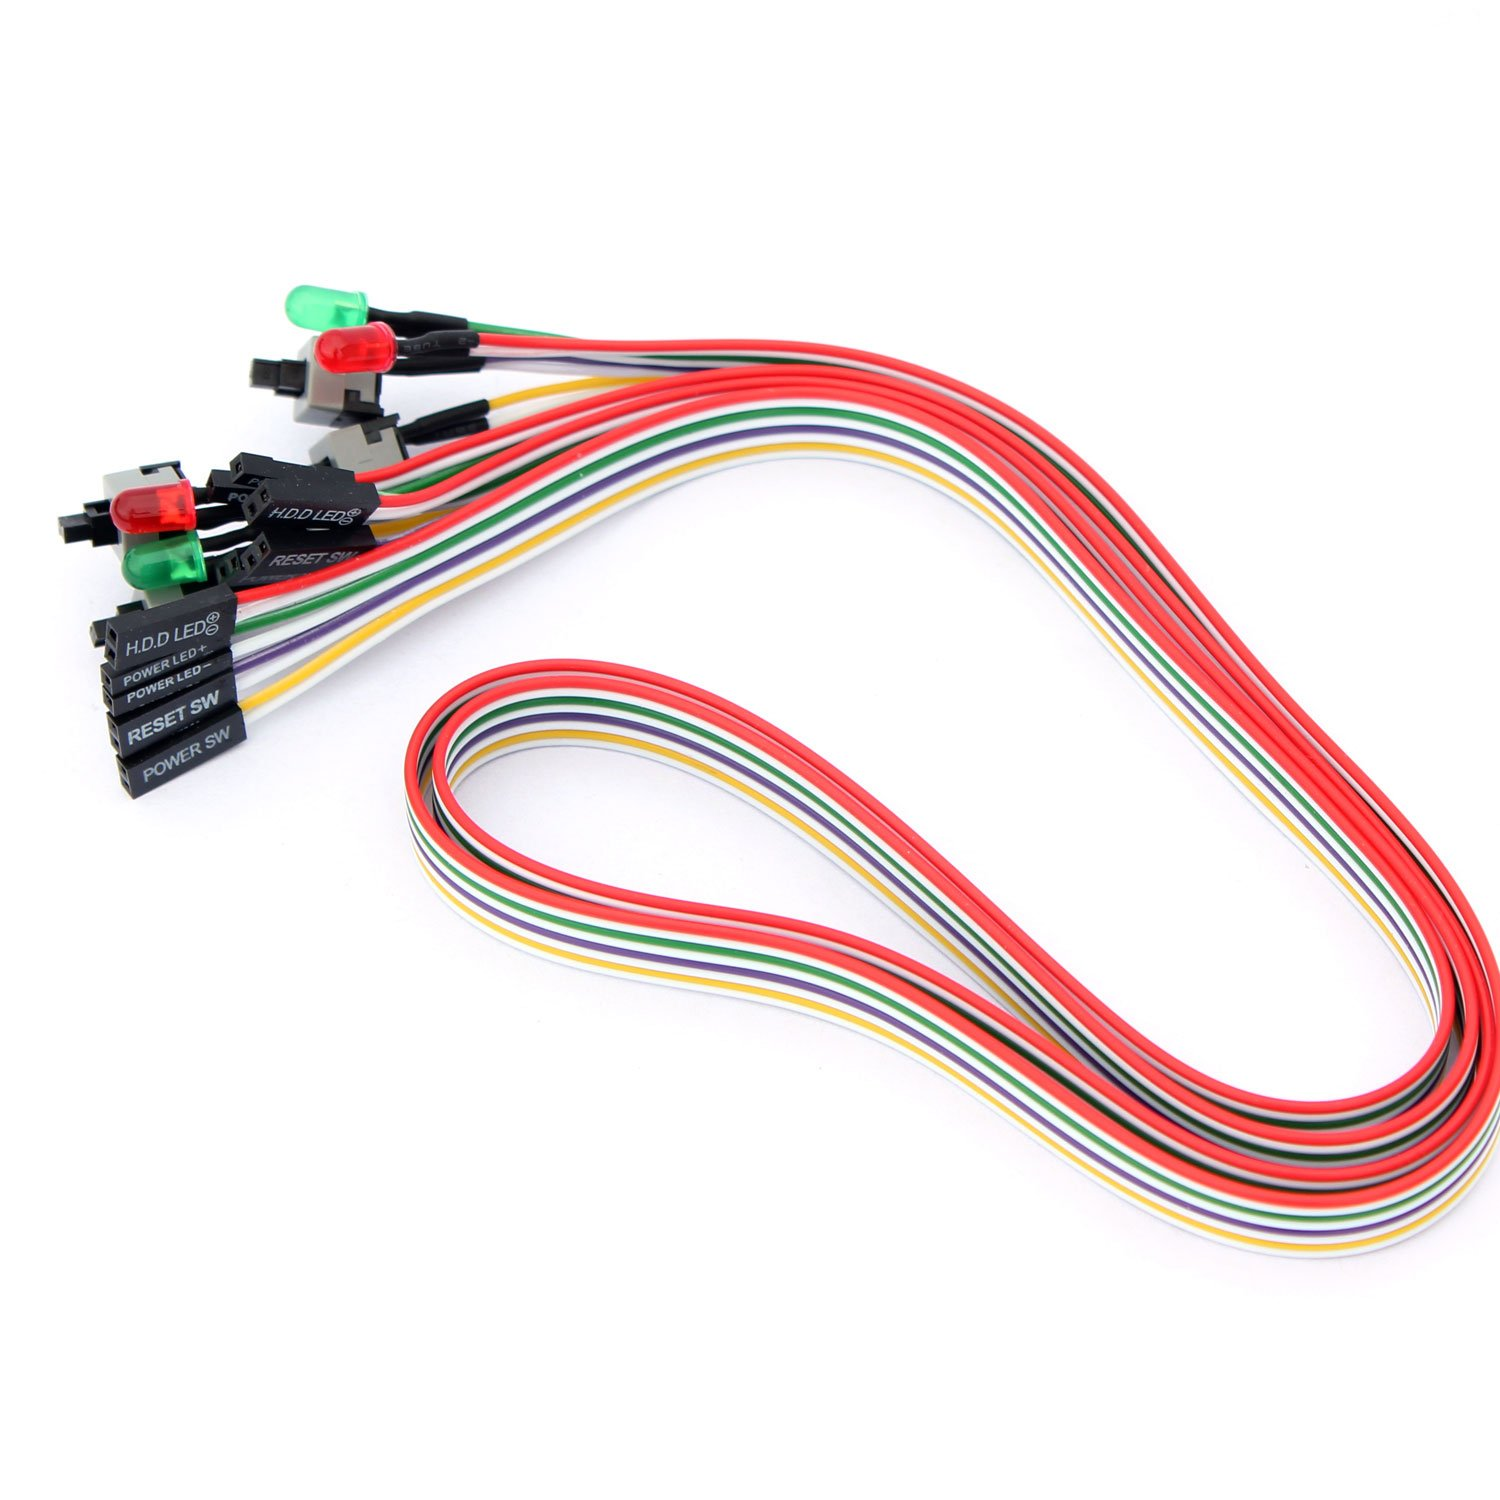 56tiankoou 2pcs Pc Power Reset Switch Hdd Led Cable Wiring In Parallel Leds Electronics